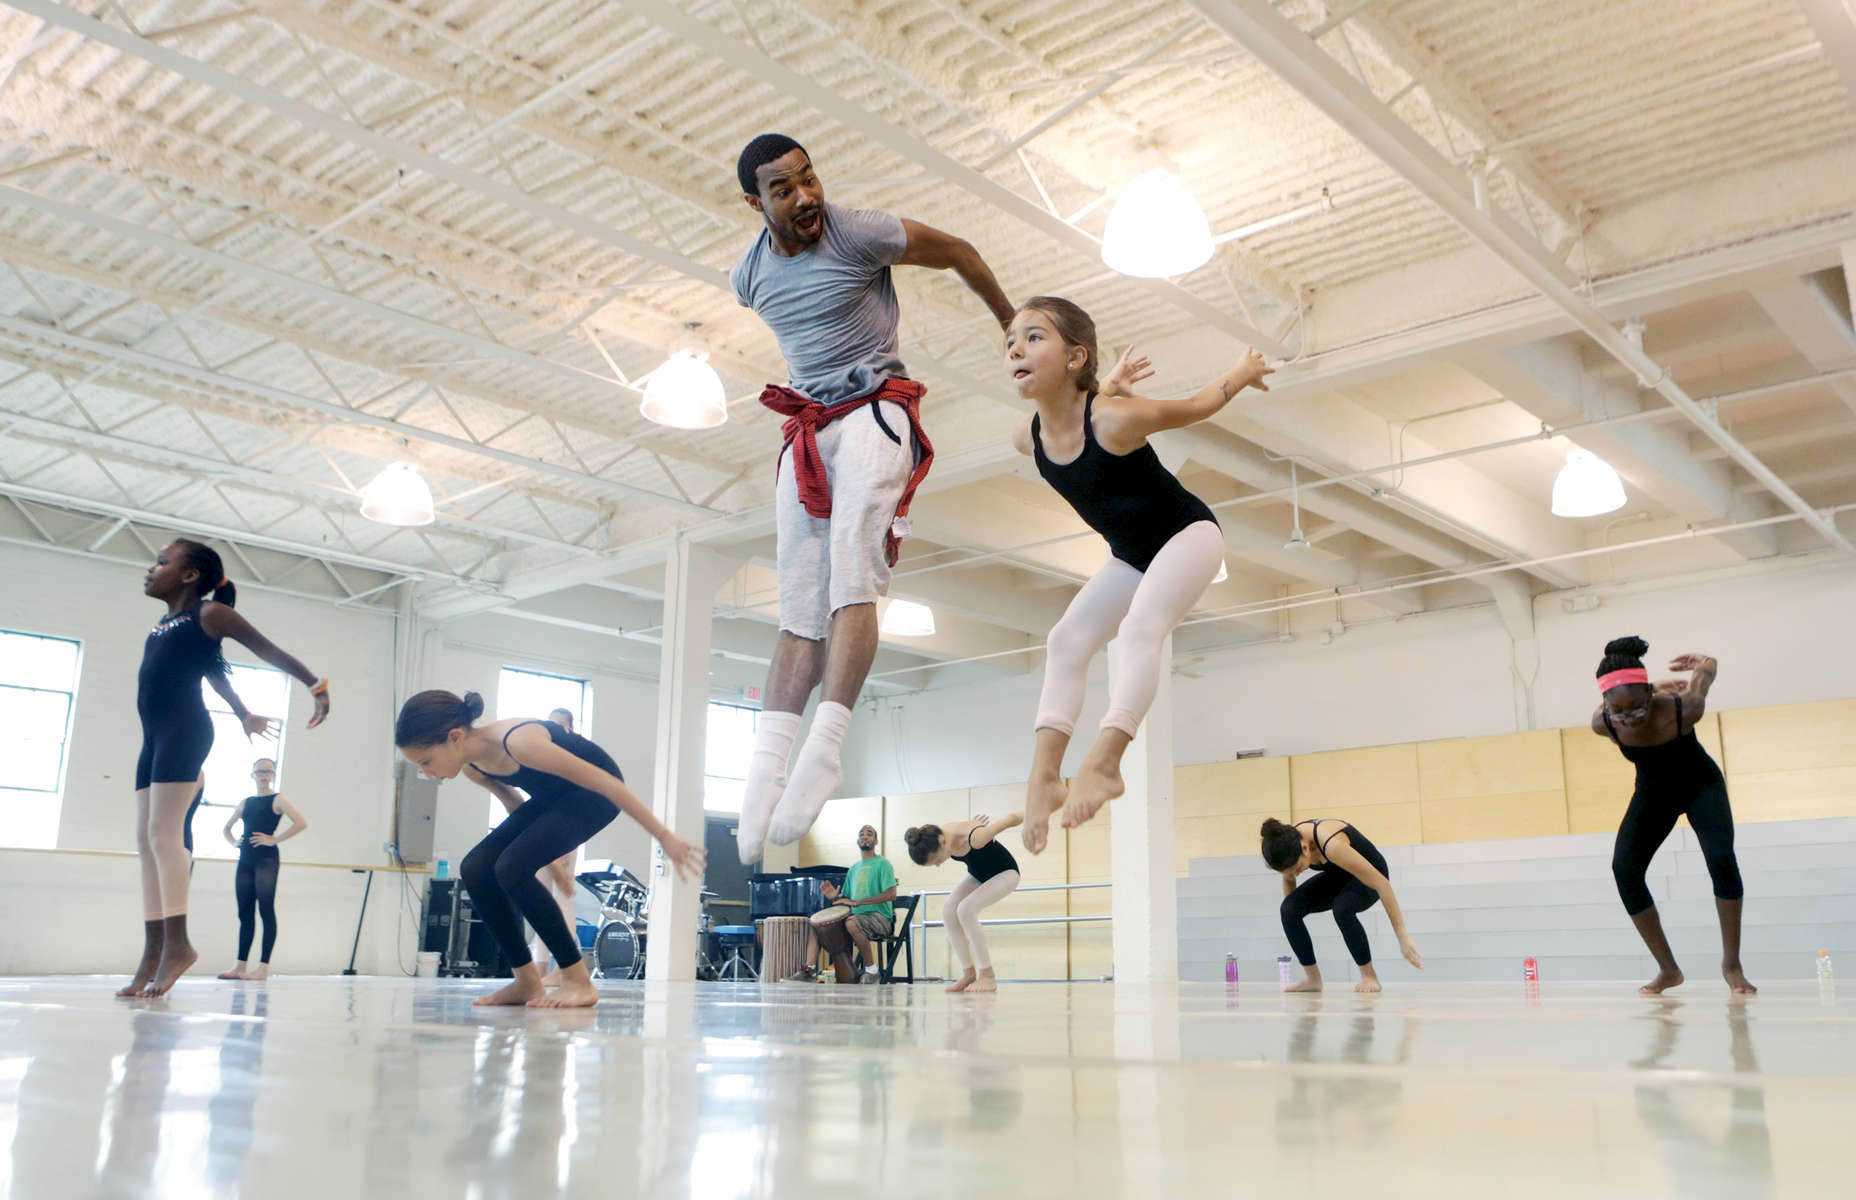 Teacher Darwin Black and student Lydia Salazar, 8, warm up during a modern dance class at TU Dance in St. Paul, Minn. The dance company, which offers classes and workshops, recently moved to a new facility along University Avenue in St. Paul.